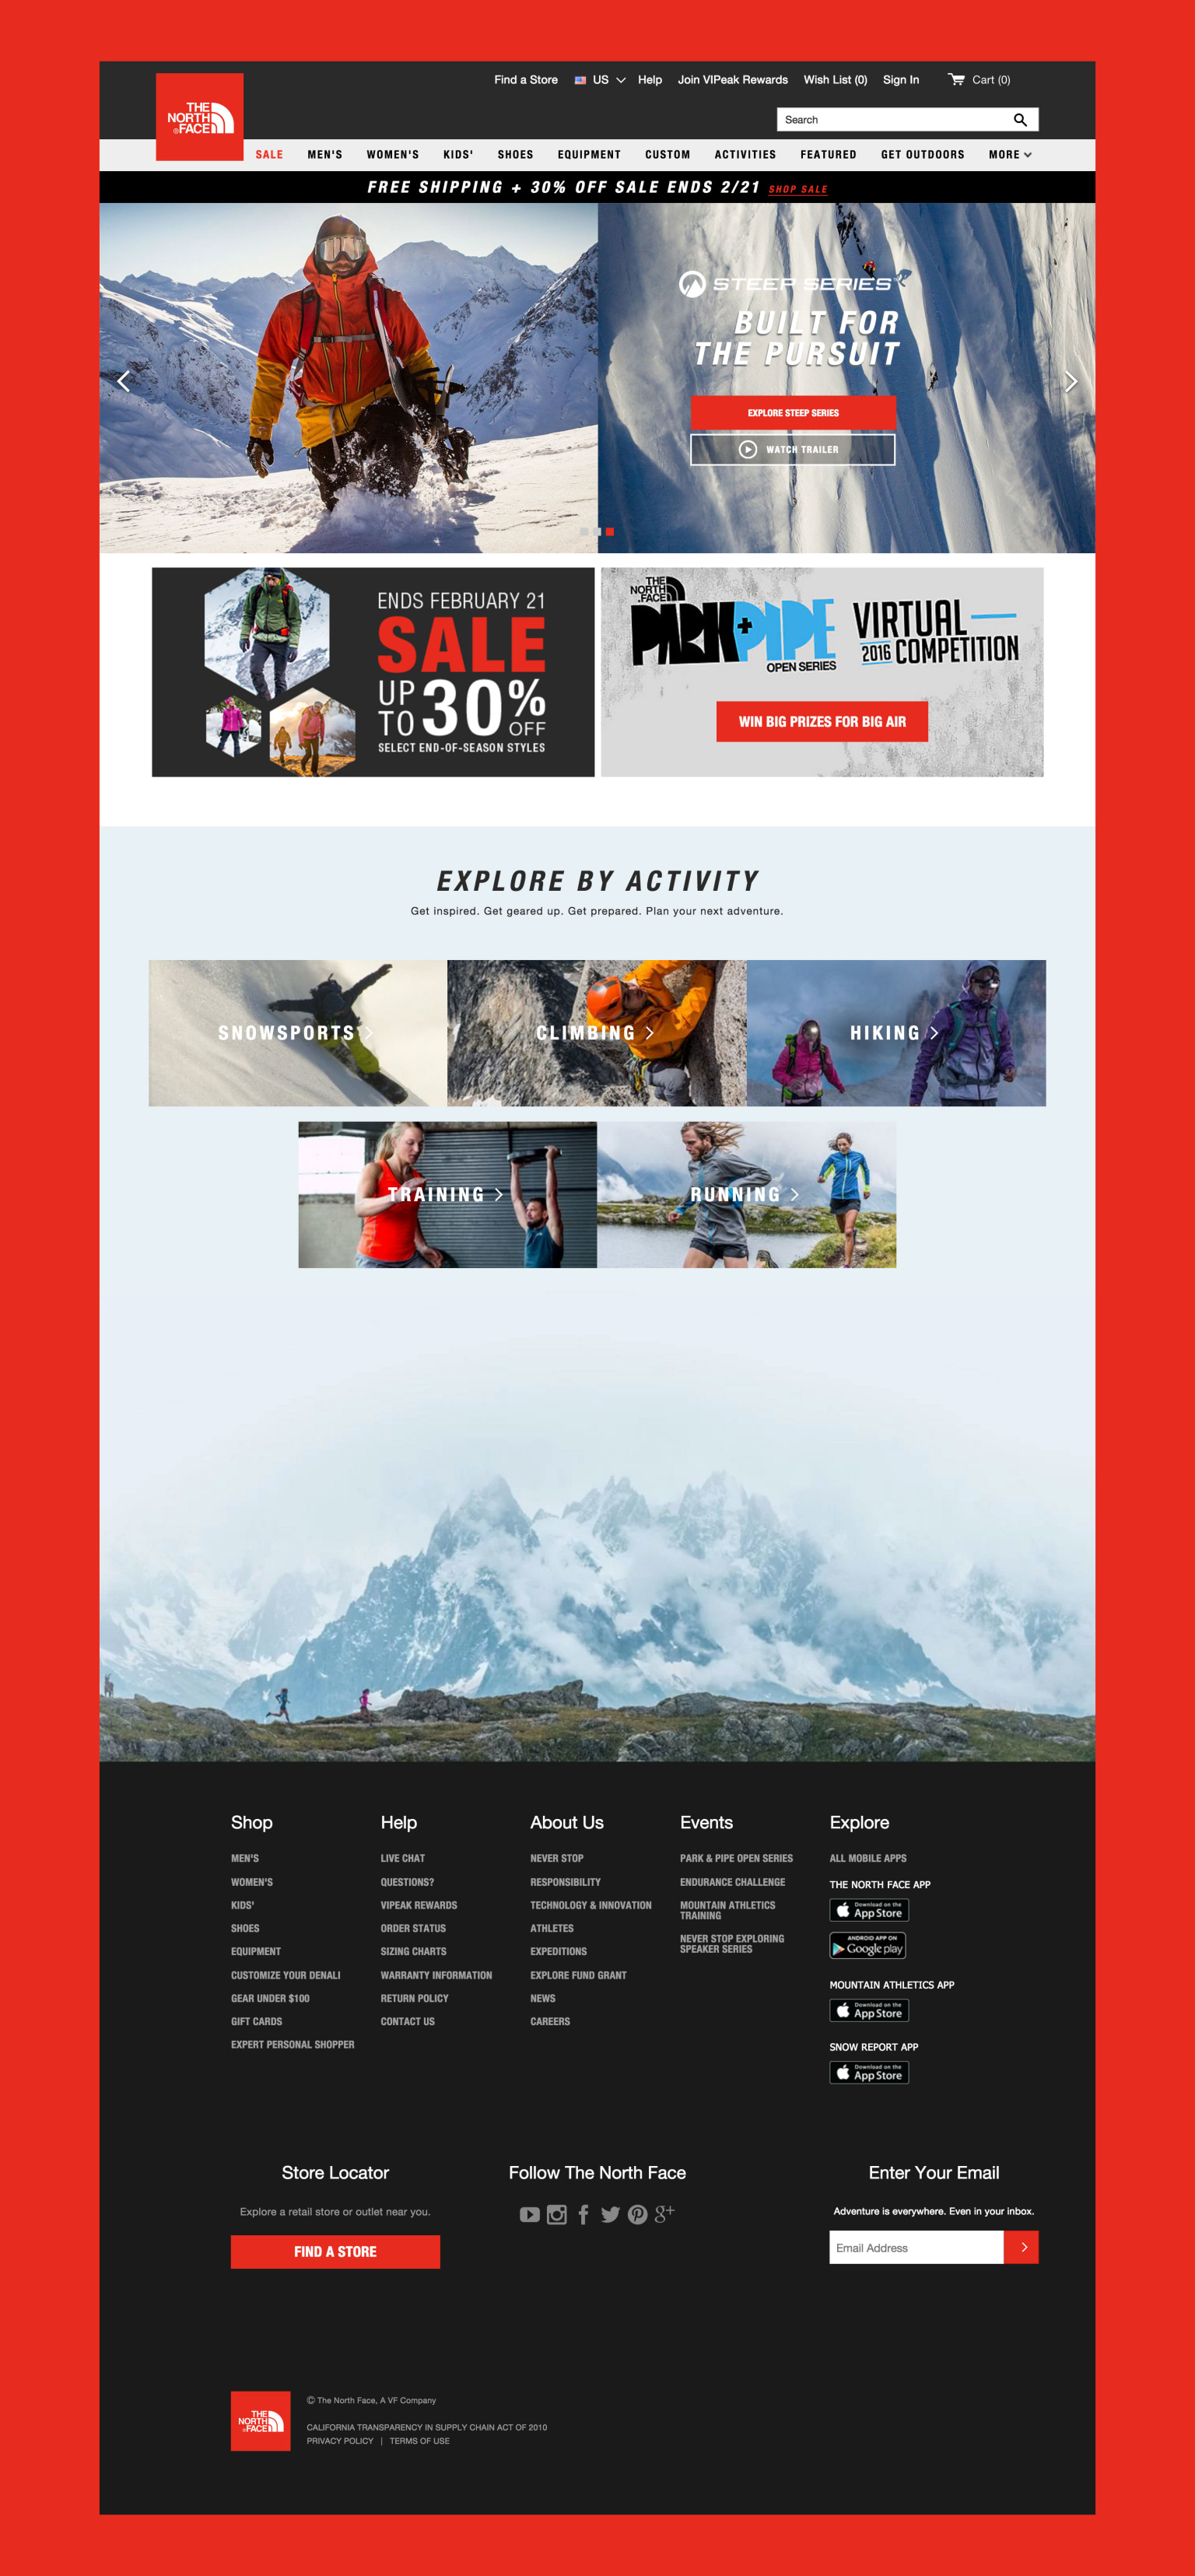 The North Face Website Redesign